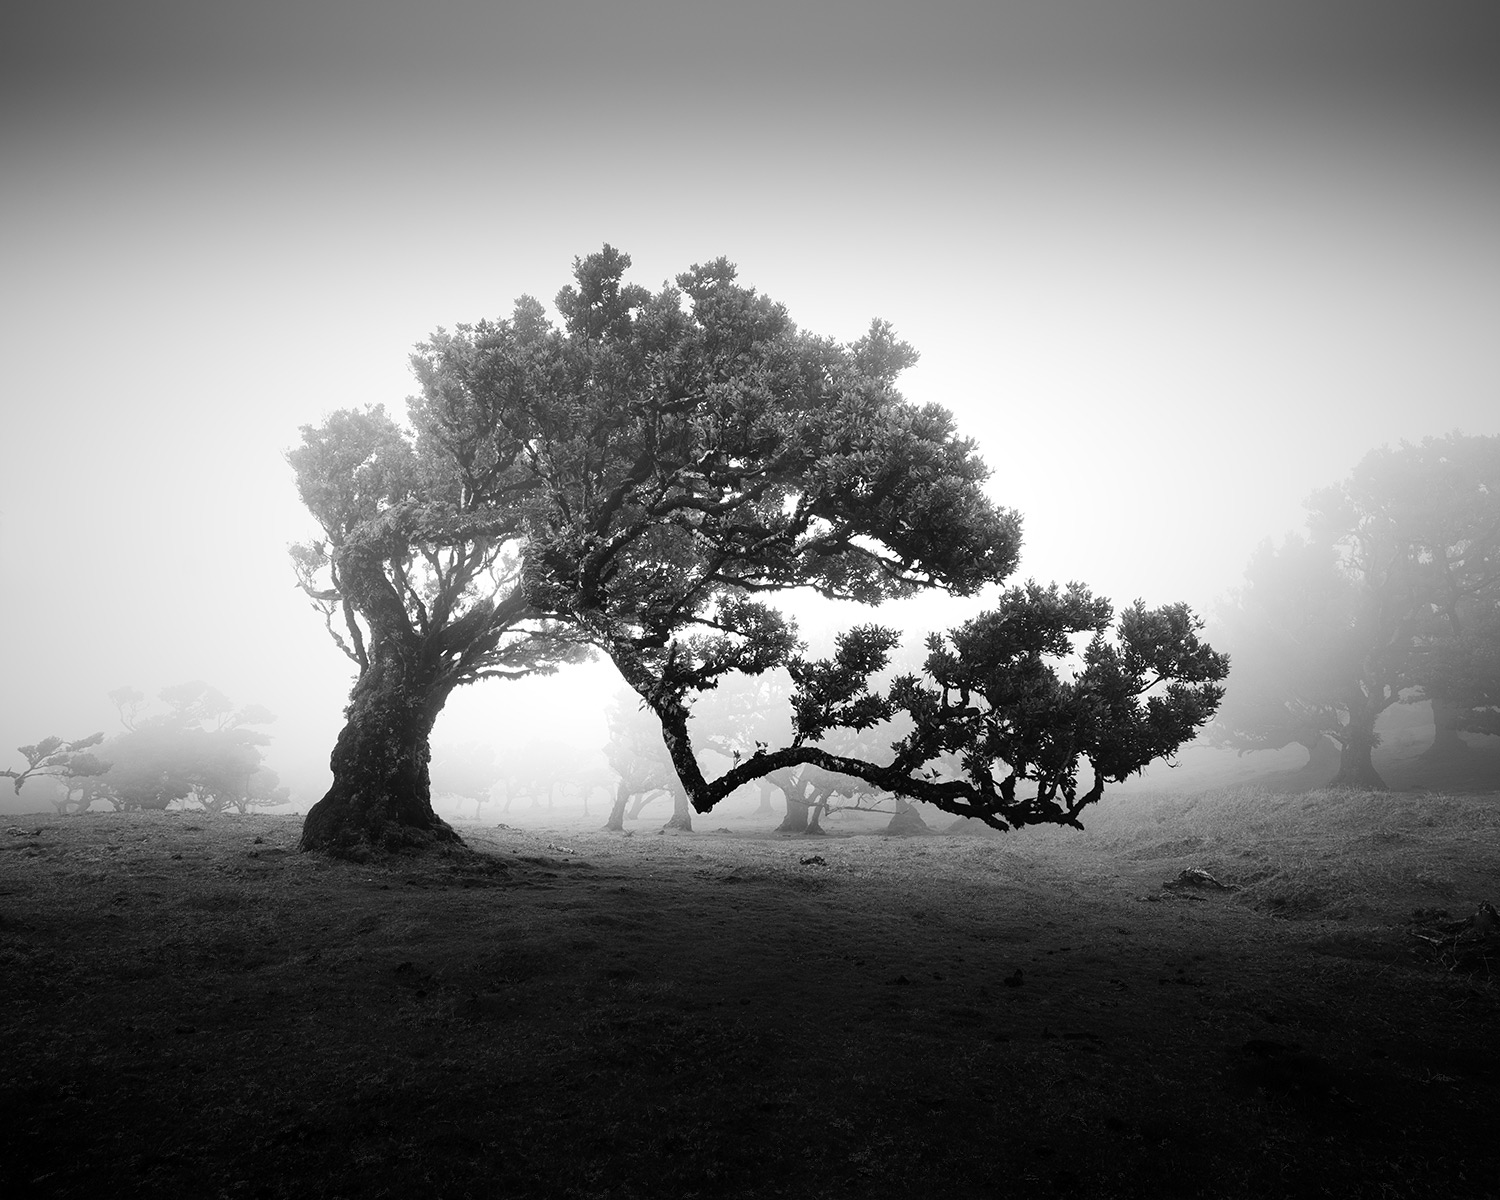 Bare Tree Branches Captured in Layers of Eerie Morning Fog by Michael Schlegel